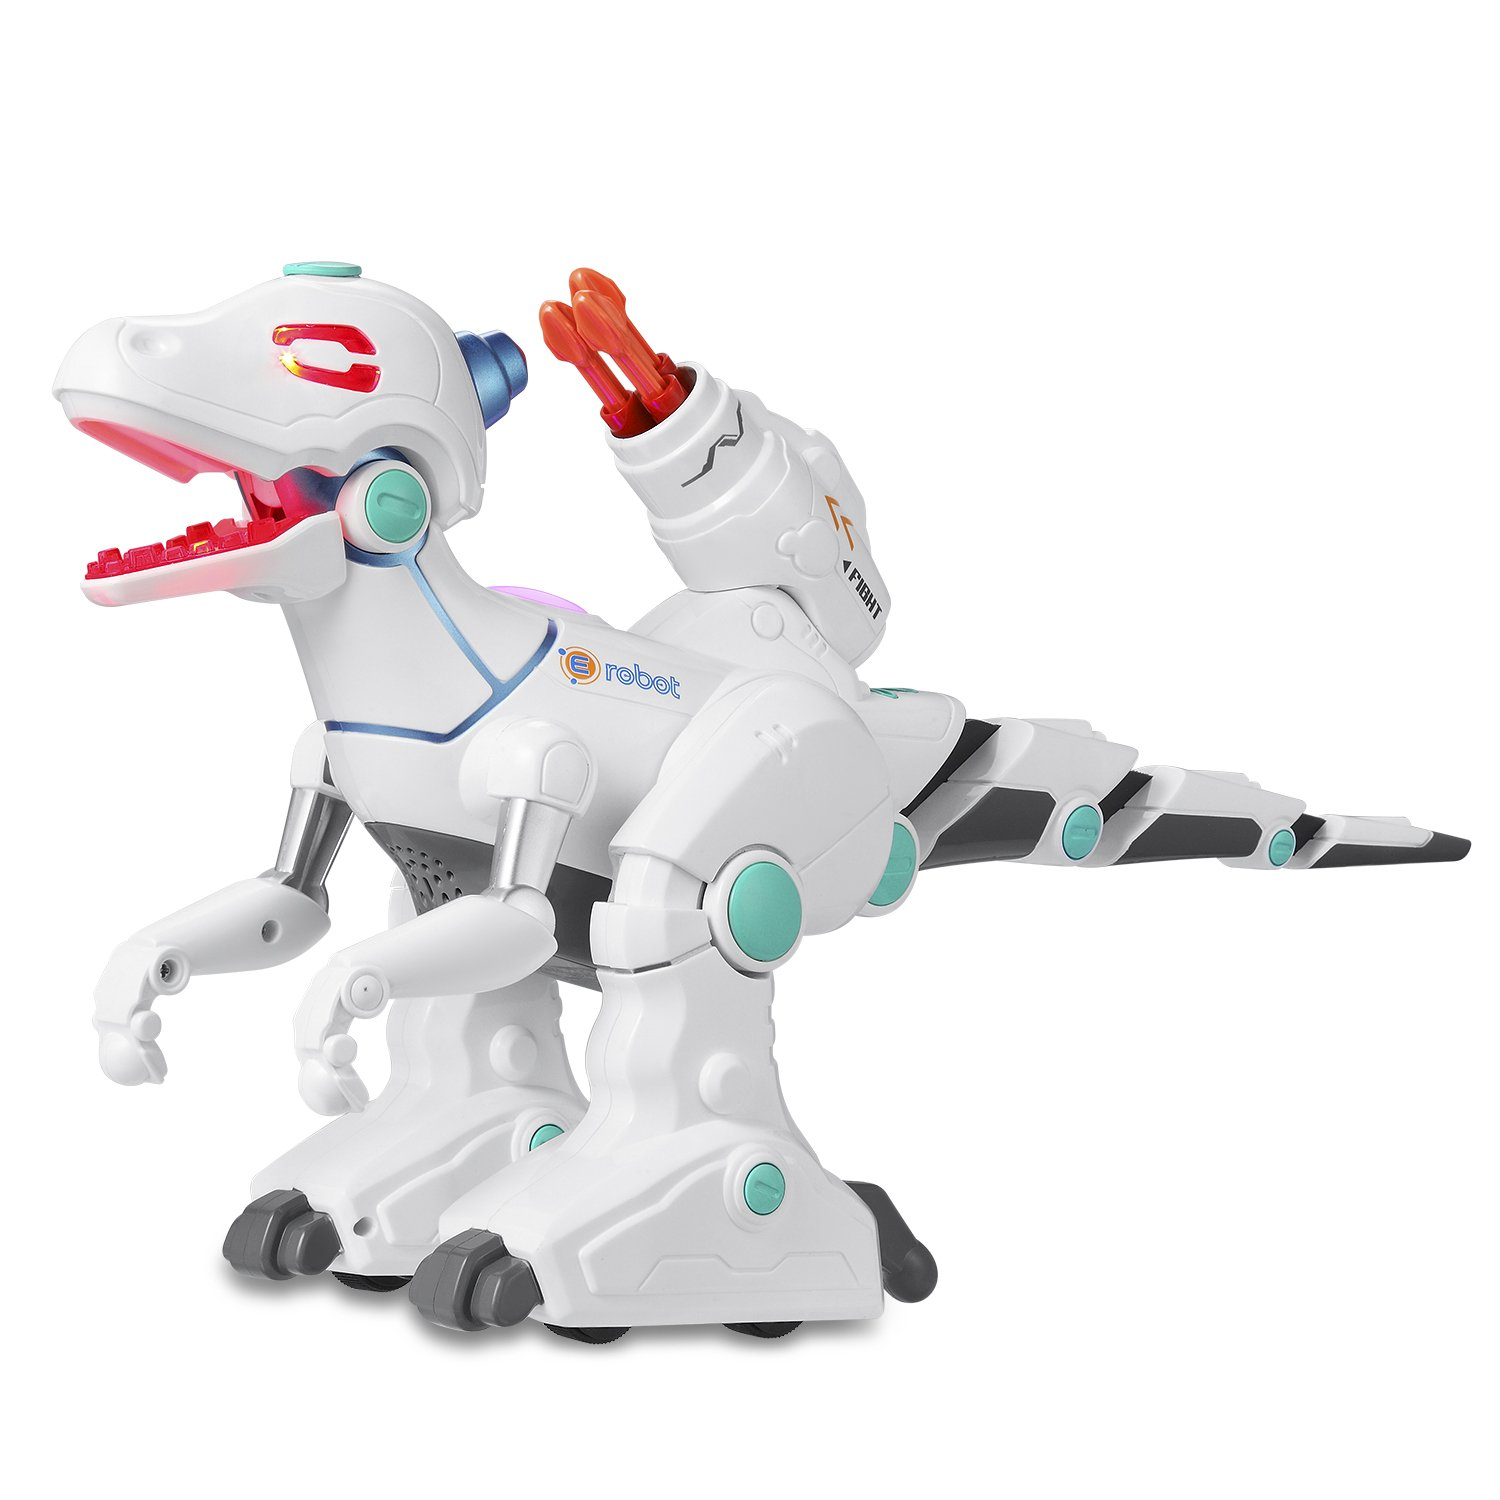 HaiteRemote Control Robot Dinosaur, Dinosaur Toys for Kids, Dino Action, Sprays, Fight, Shooting, Live Sound, Rechargeable Intelligent Electronic Pet for Boys/Girls